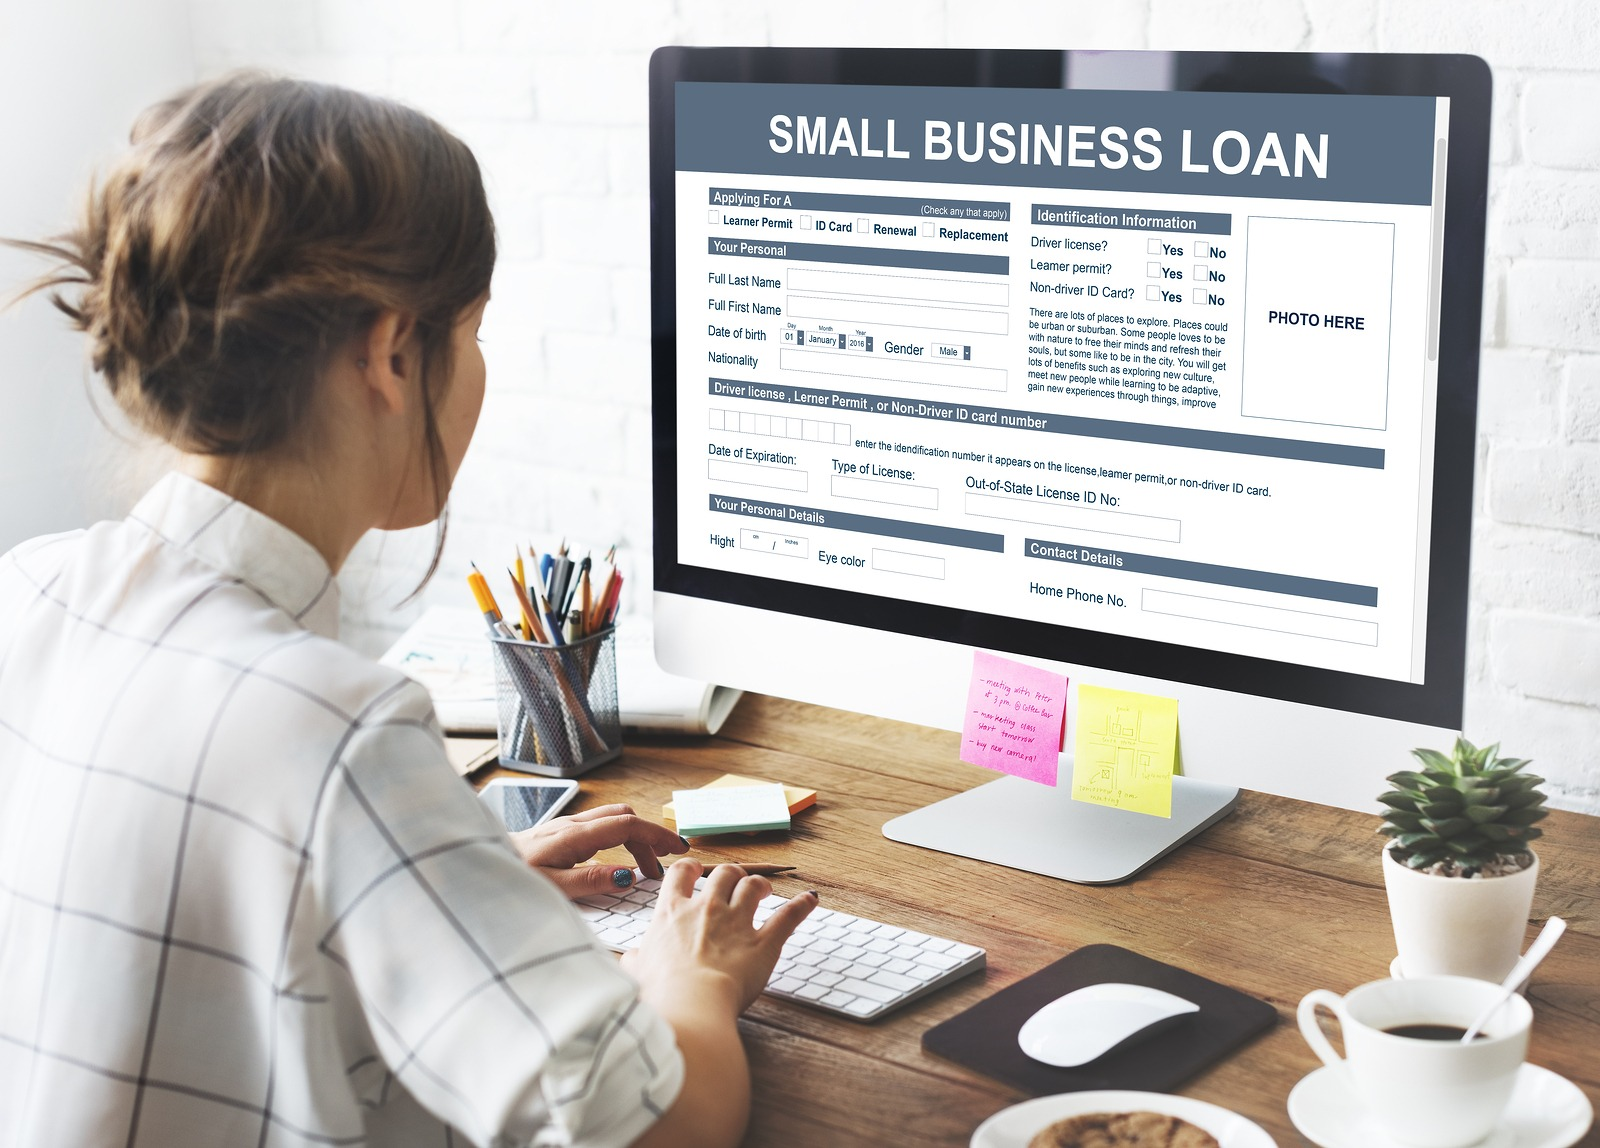 Has Alternative Lending Become Mainstream? Can Banks Compete?